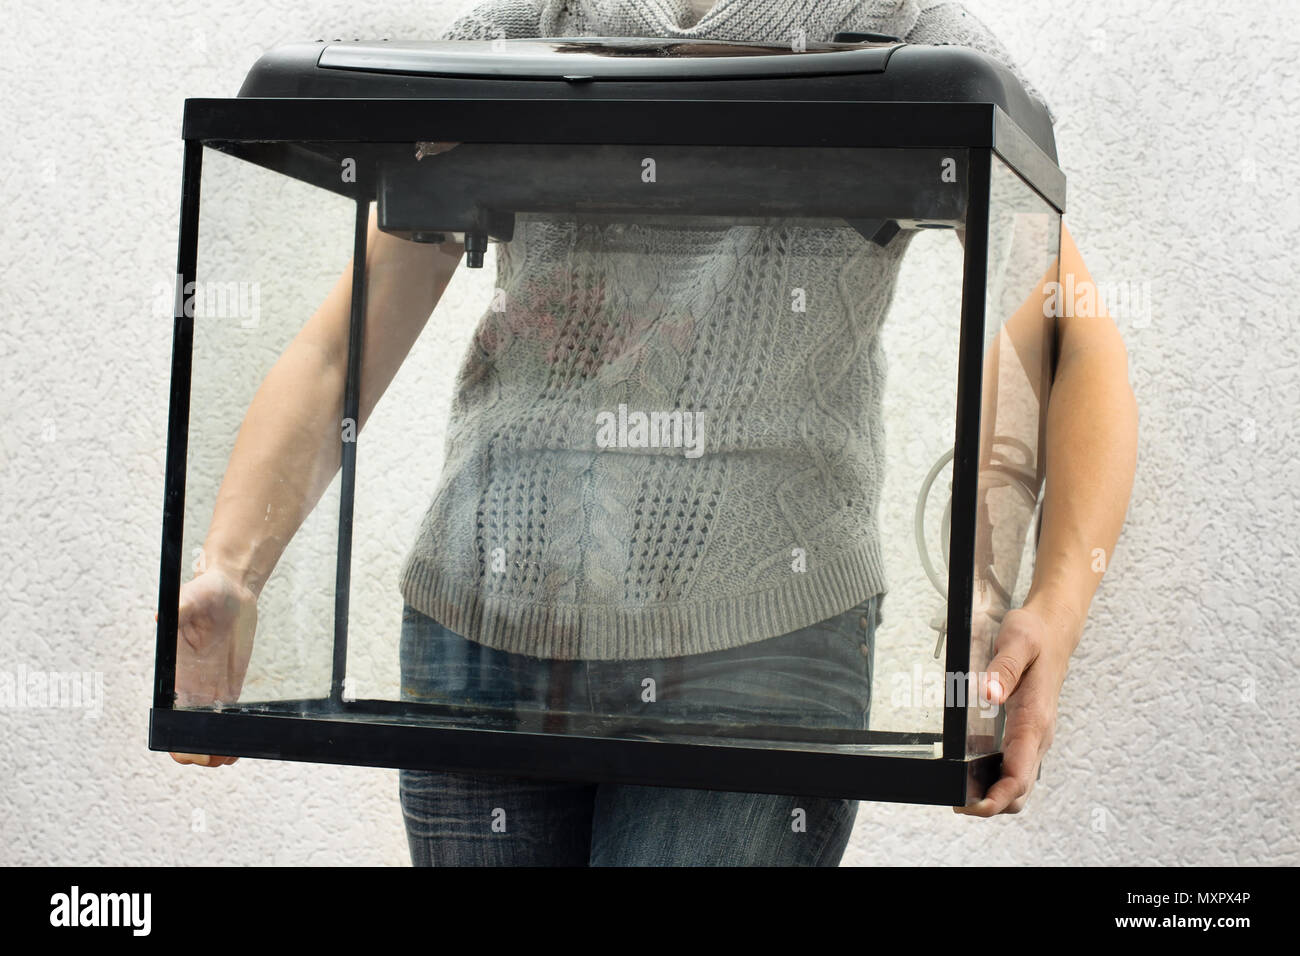 woman holding empty aquarium to restart it at home - Stock Image